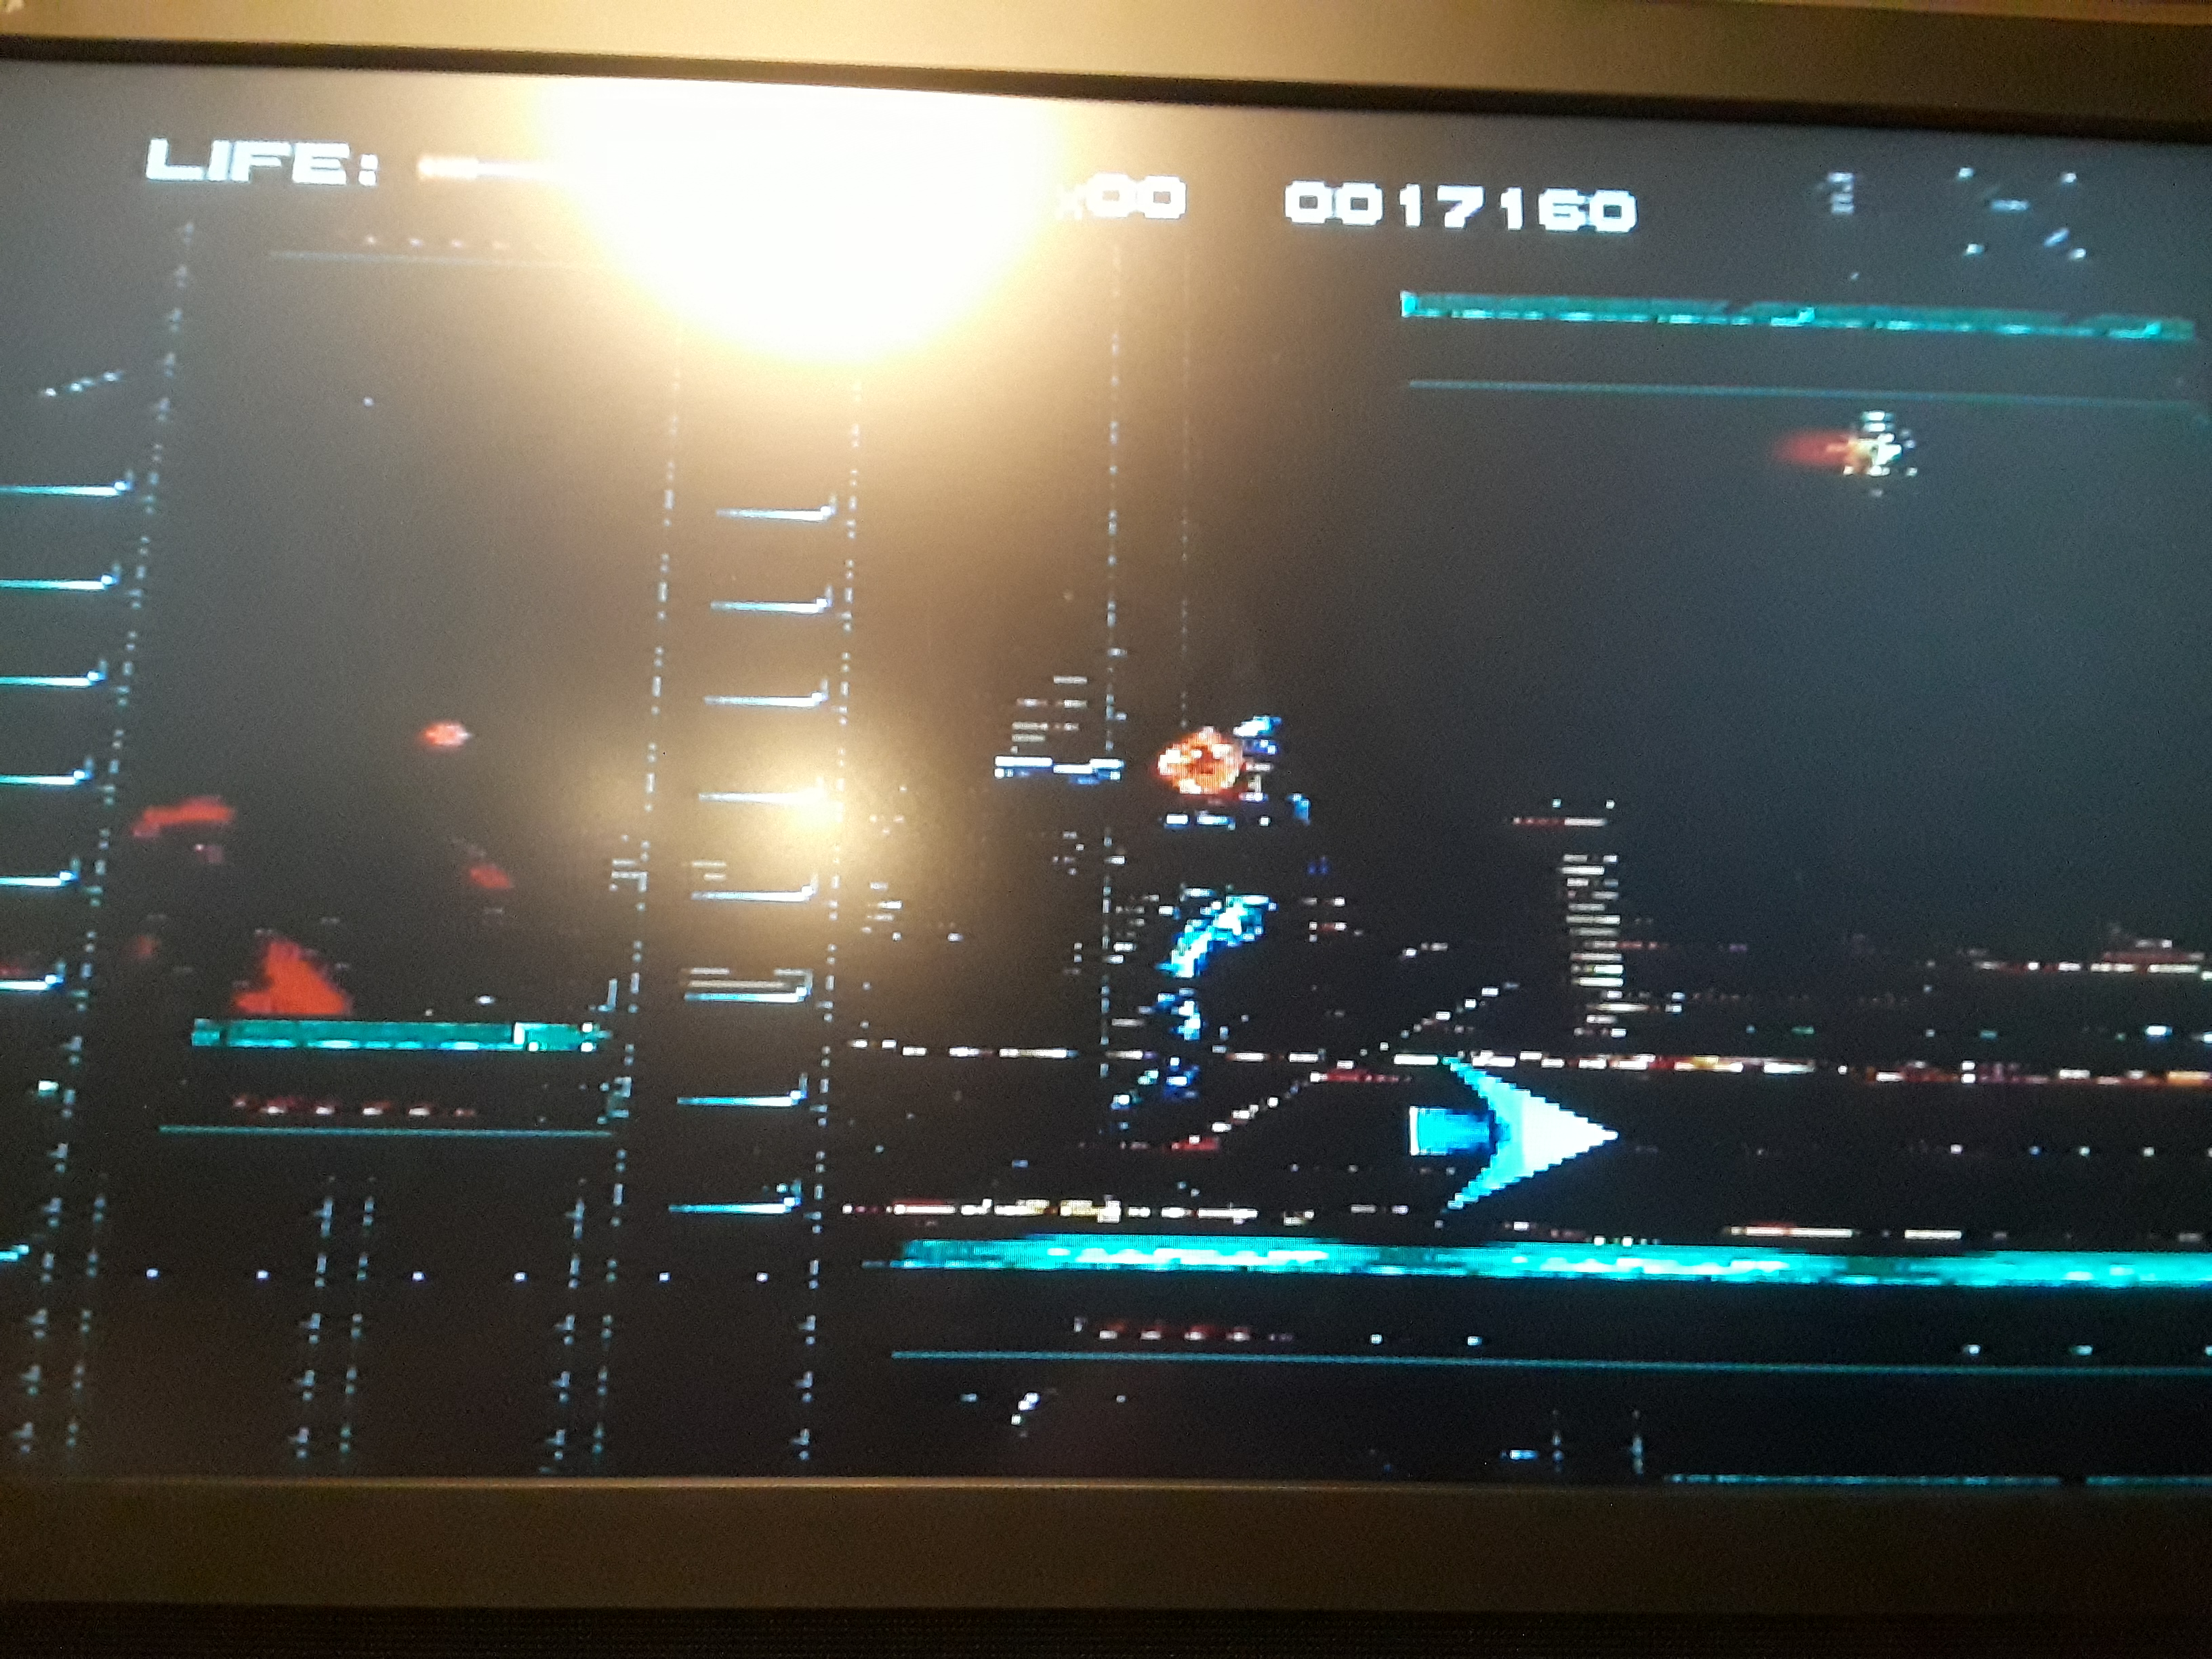 Robocop Versus The Terminator [Normal] 17,160 points